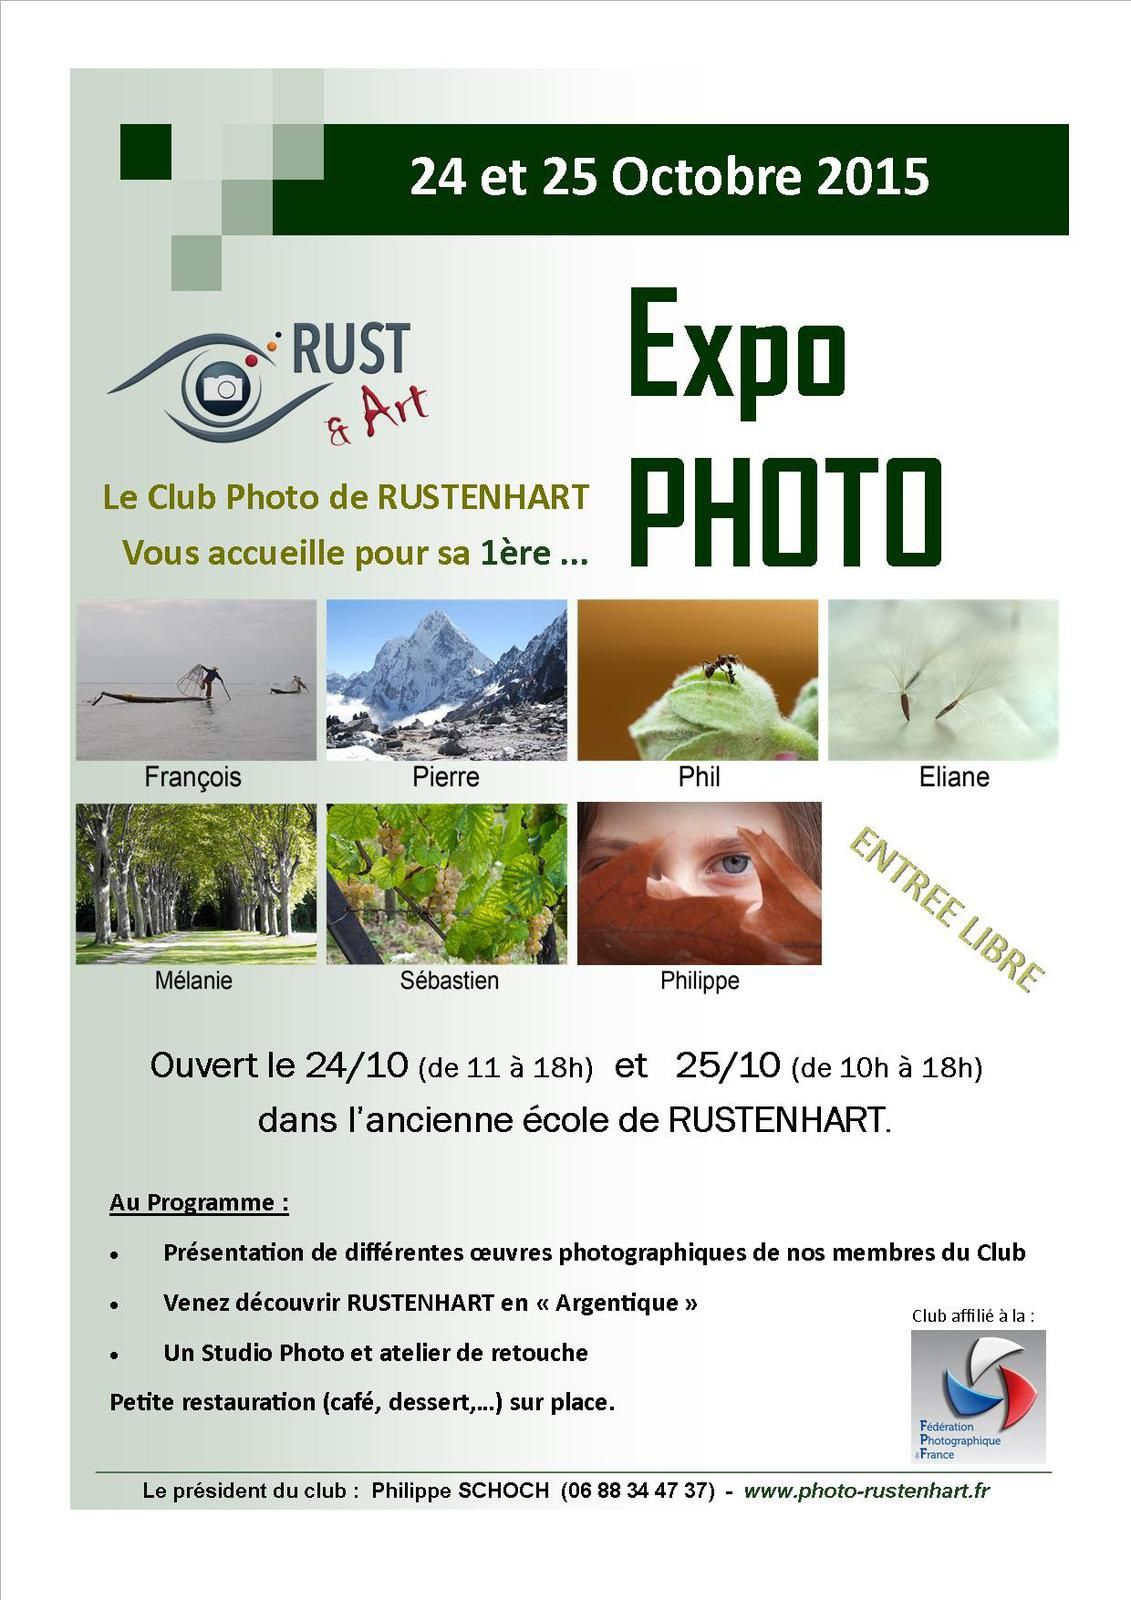 Ce week-end la 1ère exposition du club photo de RUSTENHART